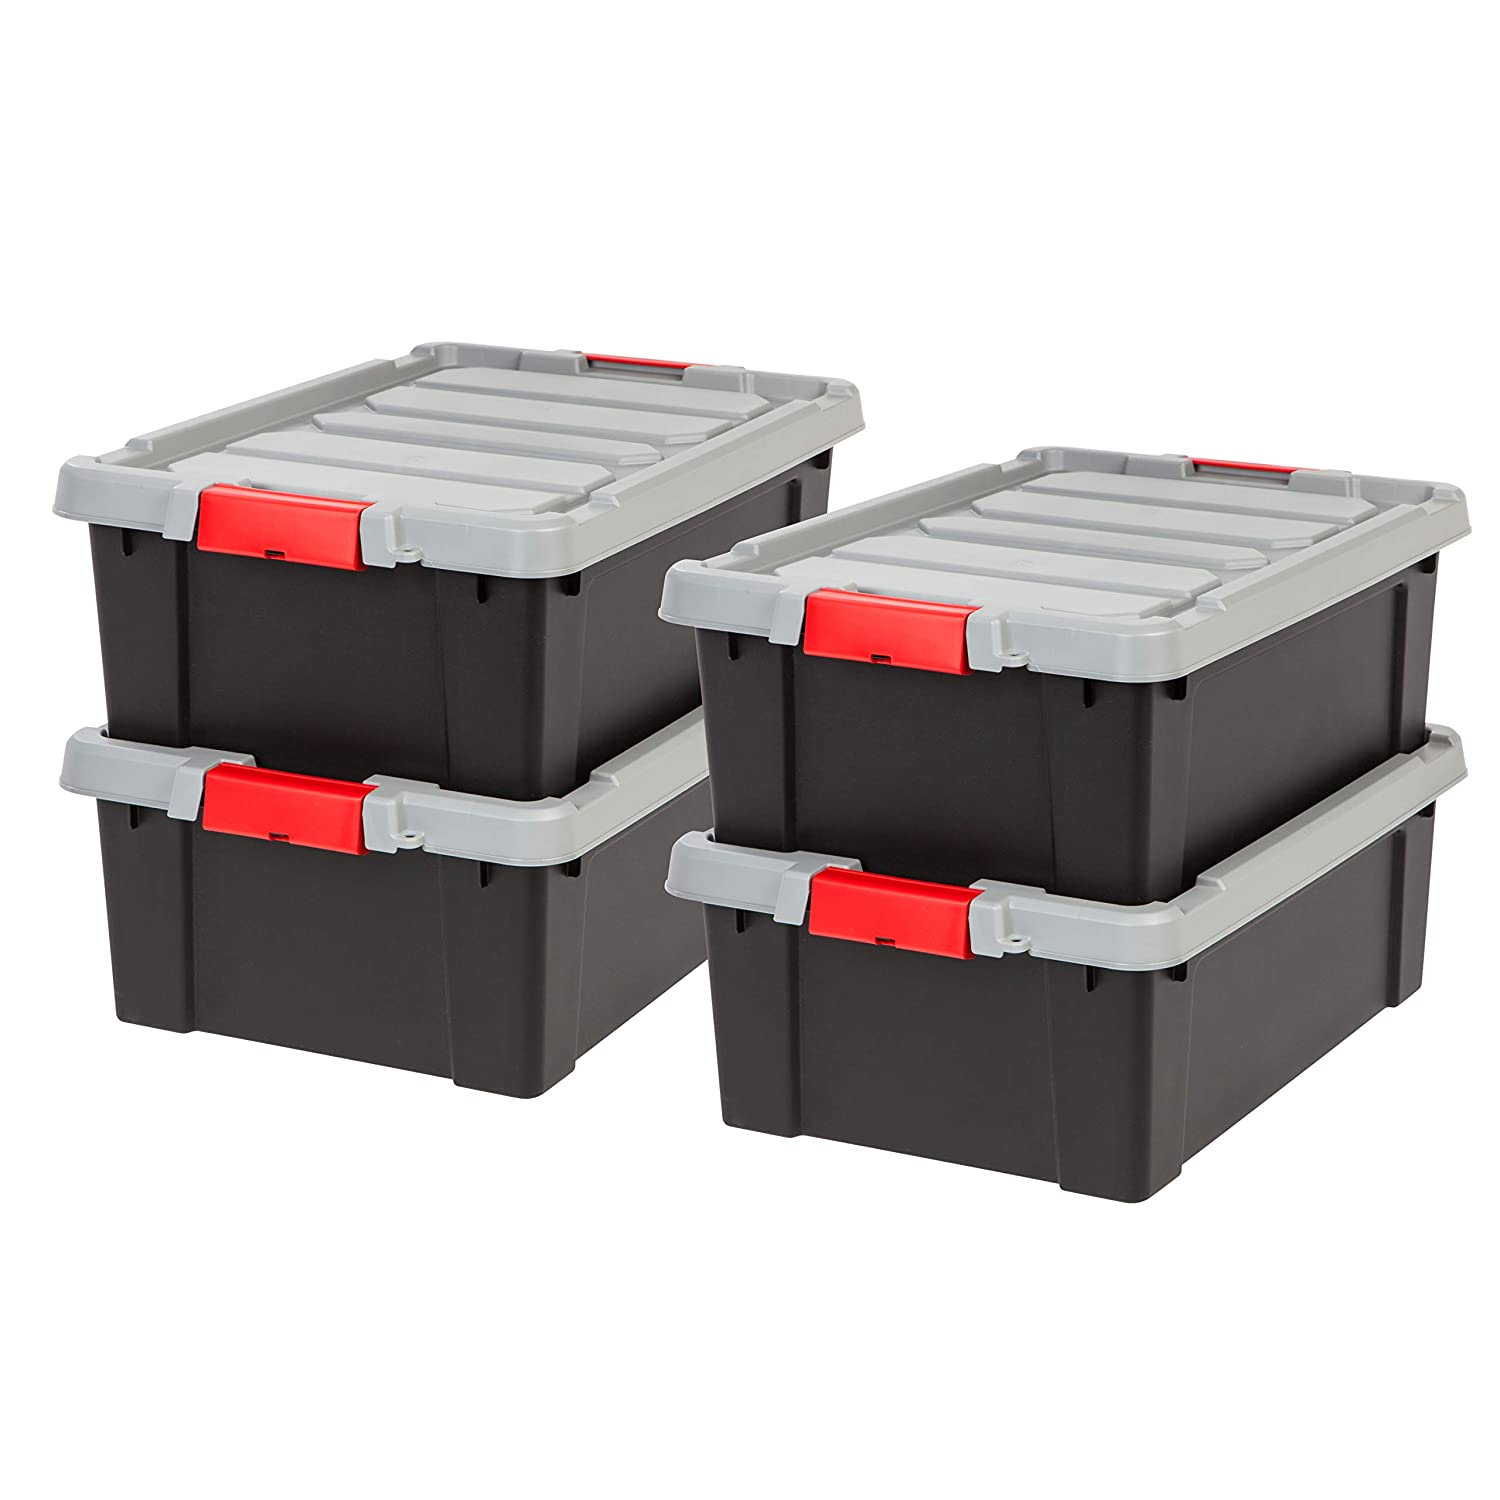 IRIS 11.75 Gallon Store-it-All Heavy Duty Stackable Utility Tote, Black with Red Buckle